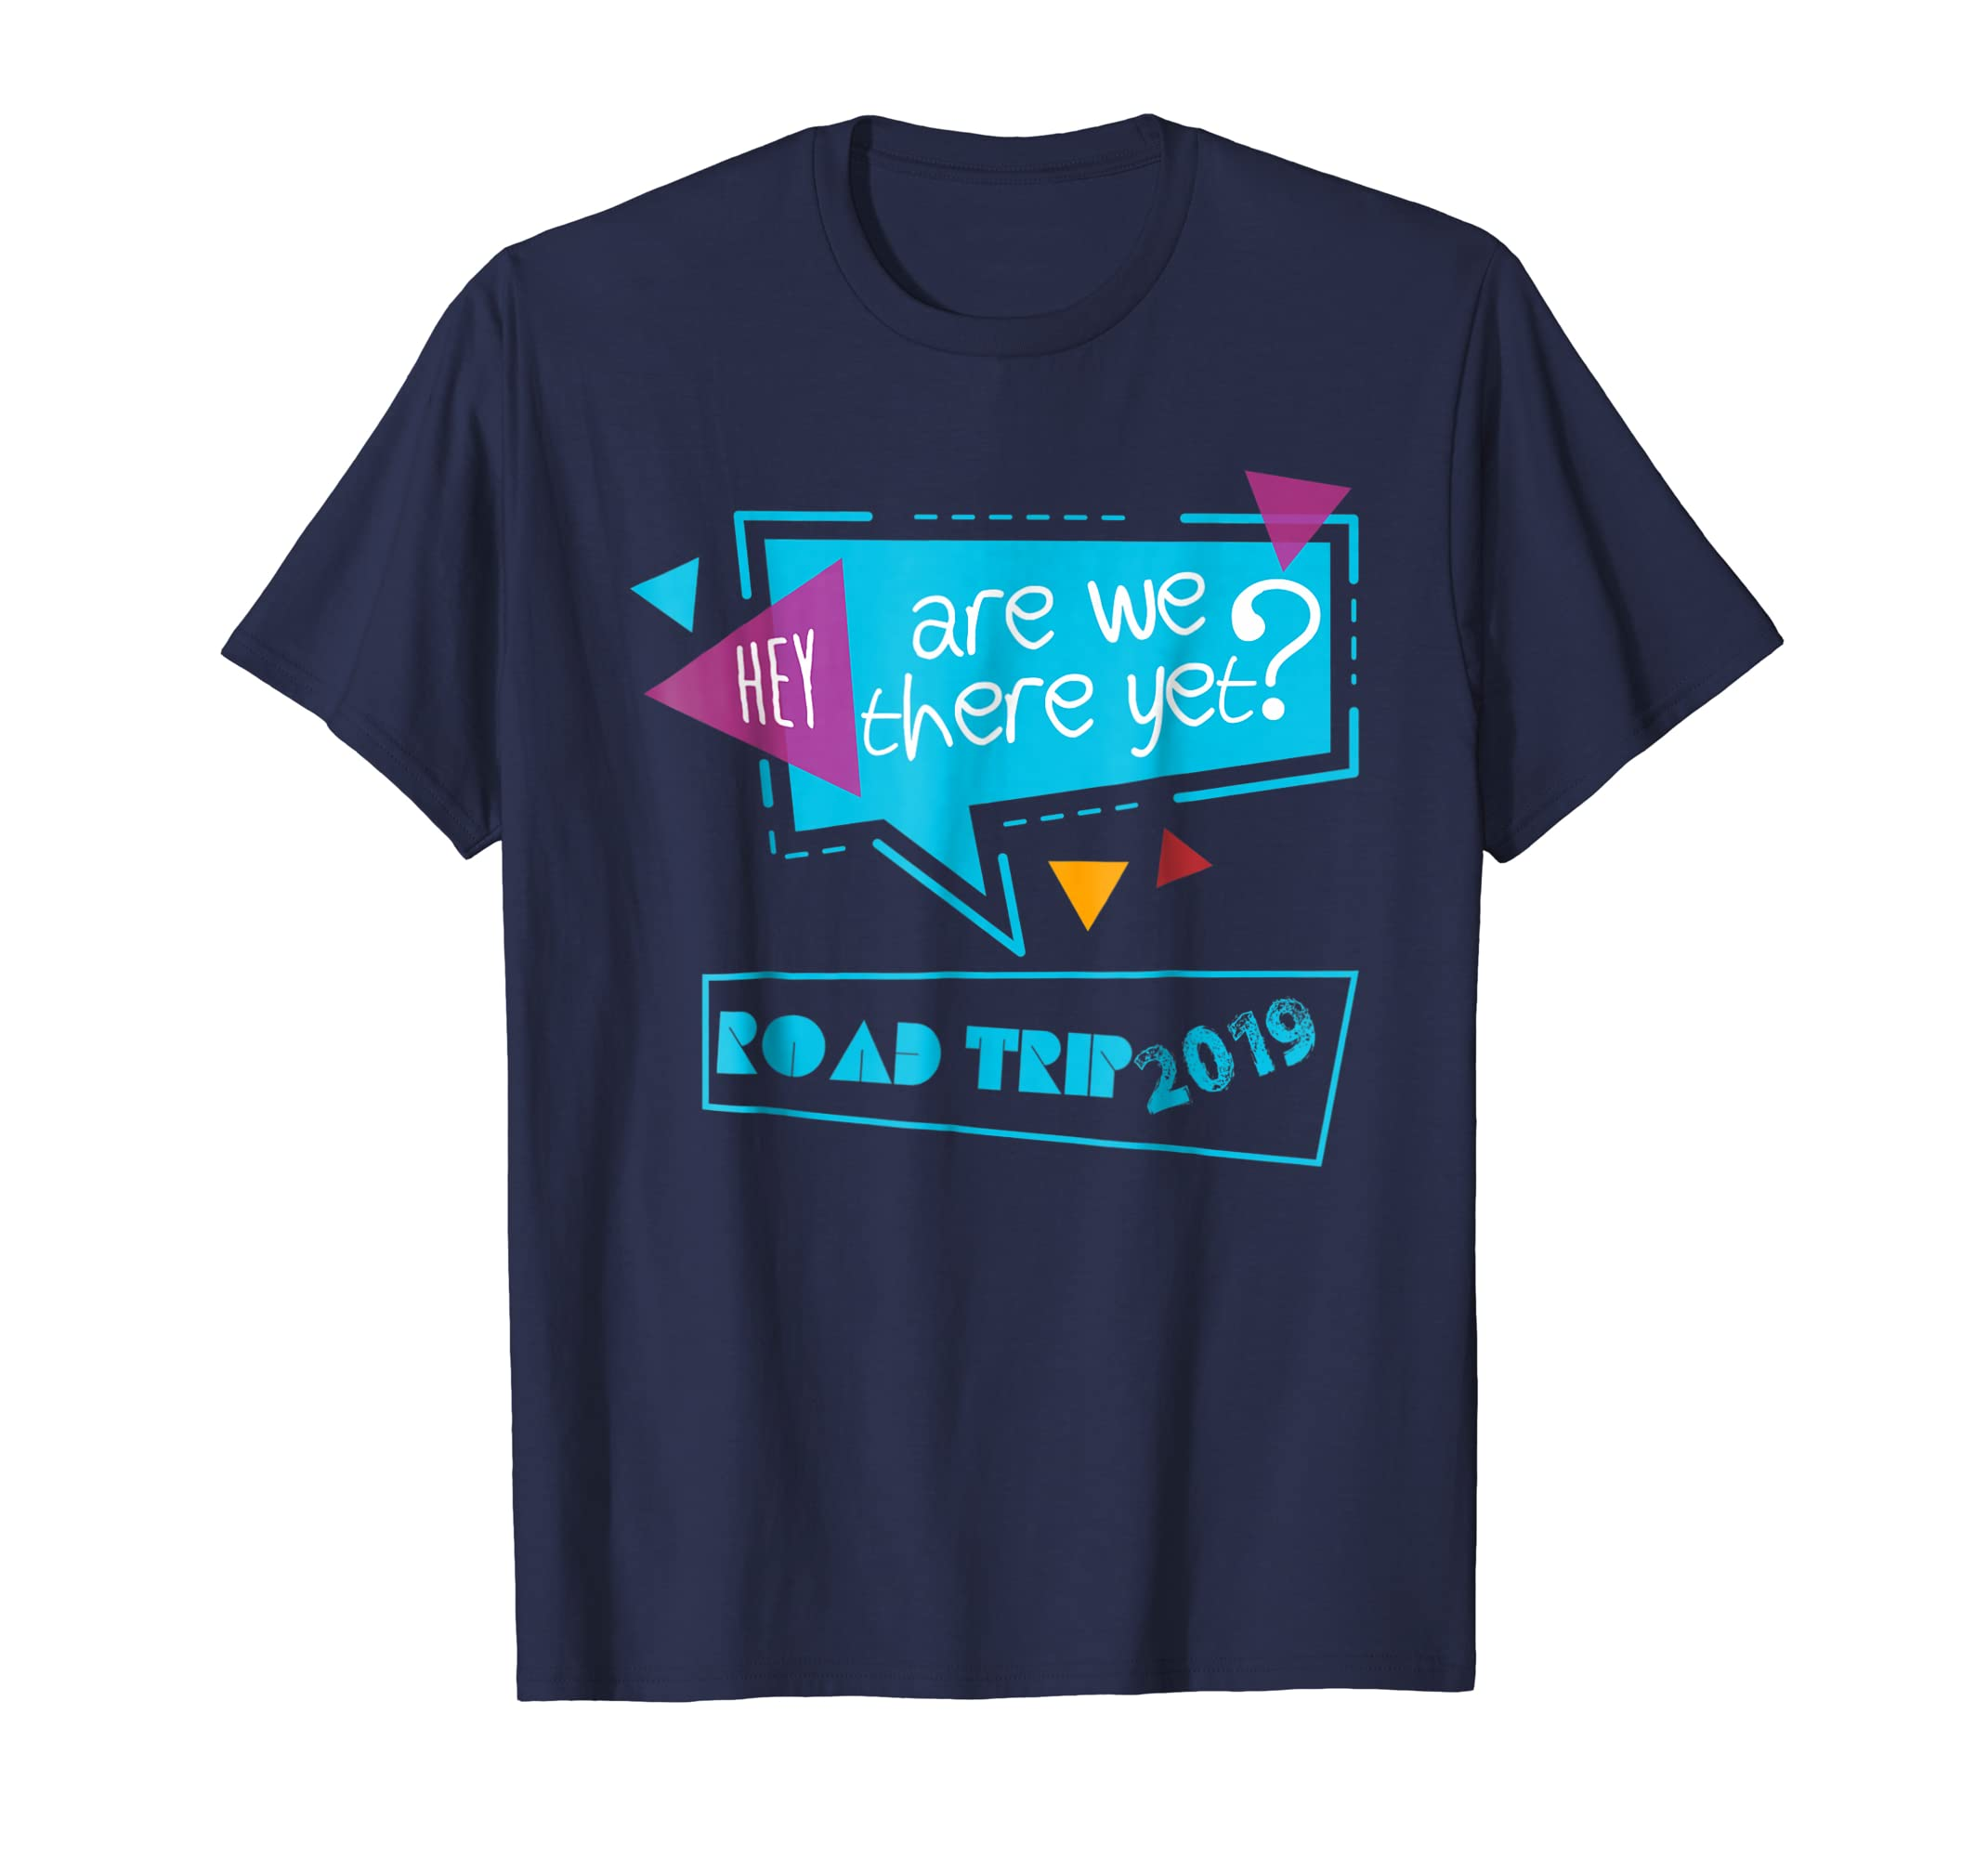 Hey, Are we there yet? Road Trip 2019 T Shirt-azvn